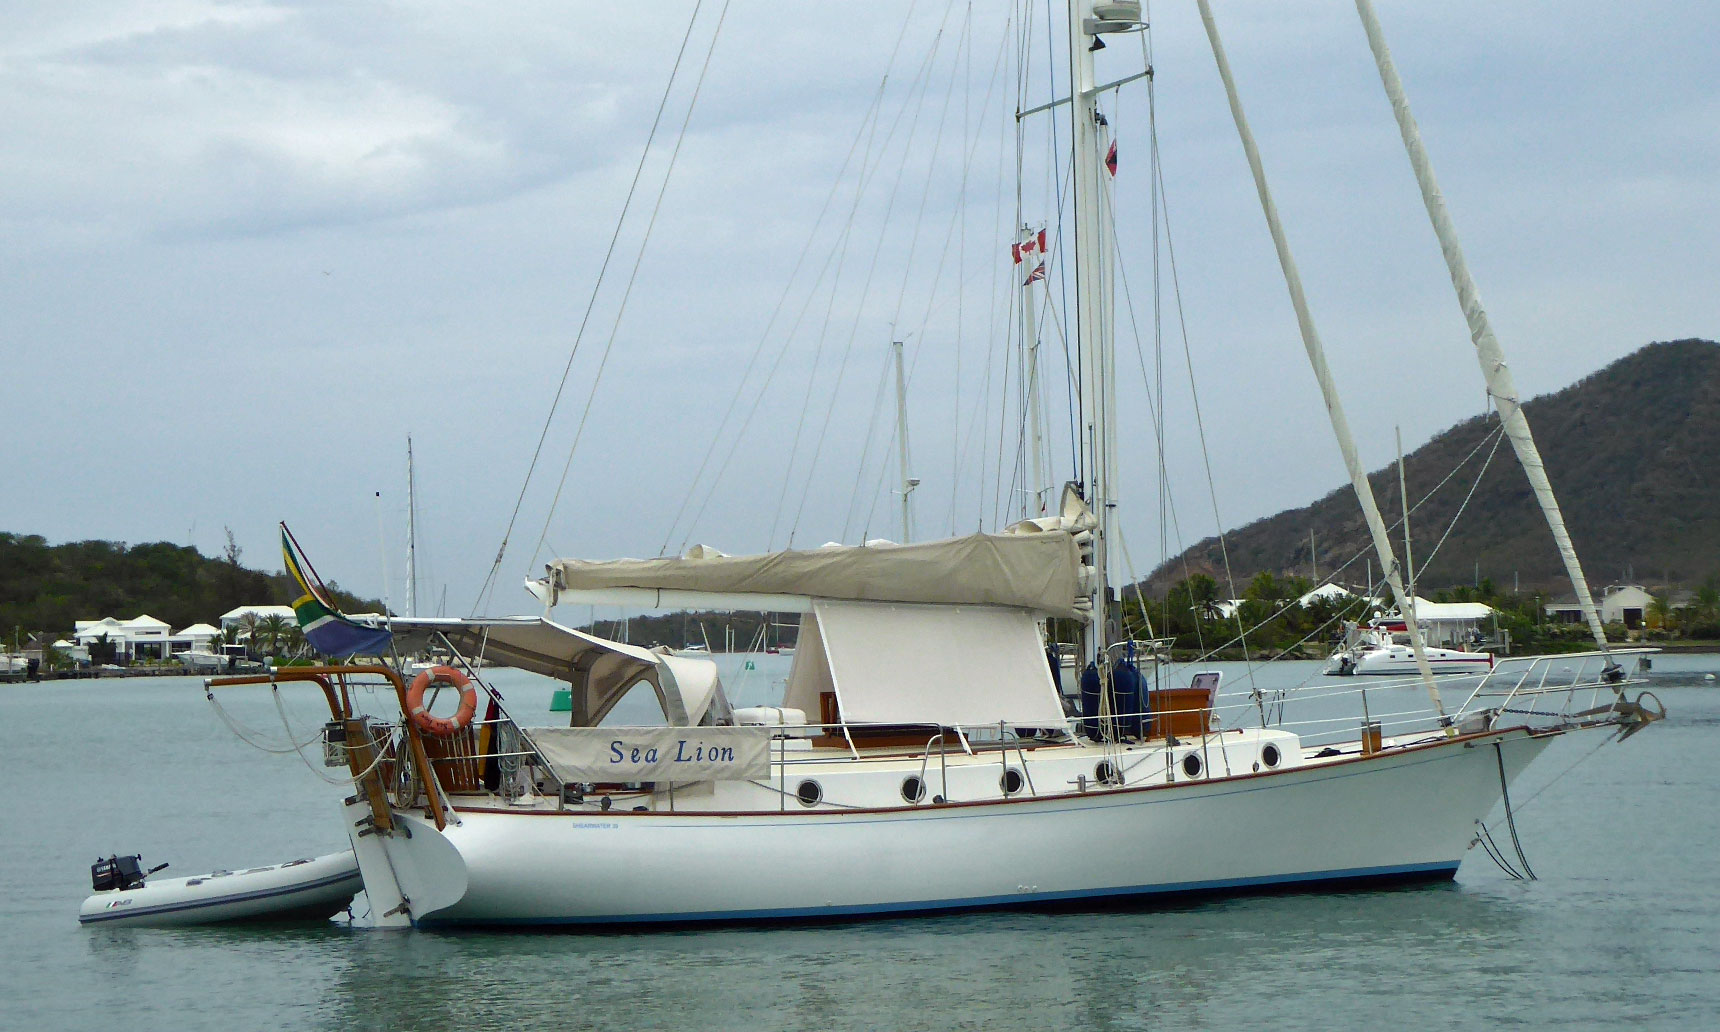 popular cruising yachts from 35 to 40 feet 10 7m to 12 2m length